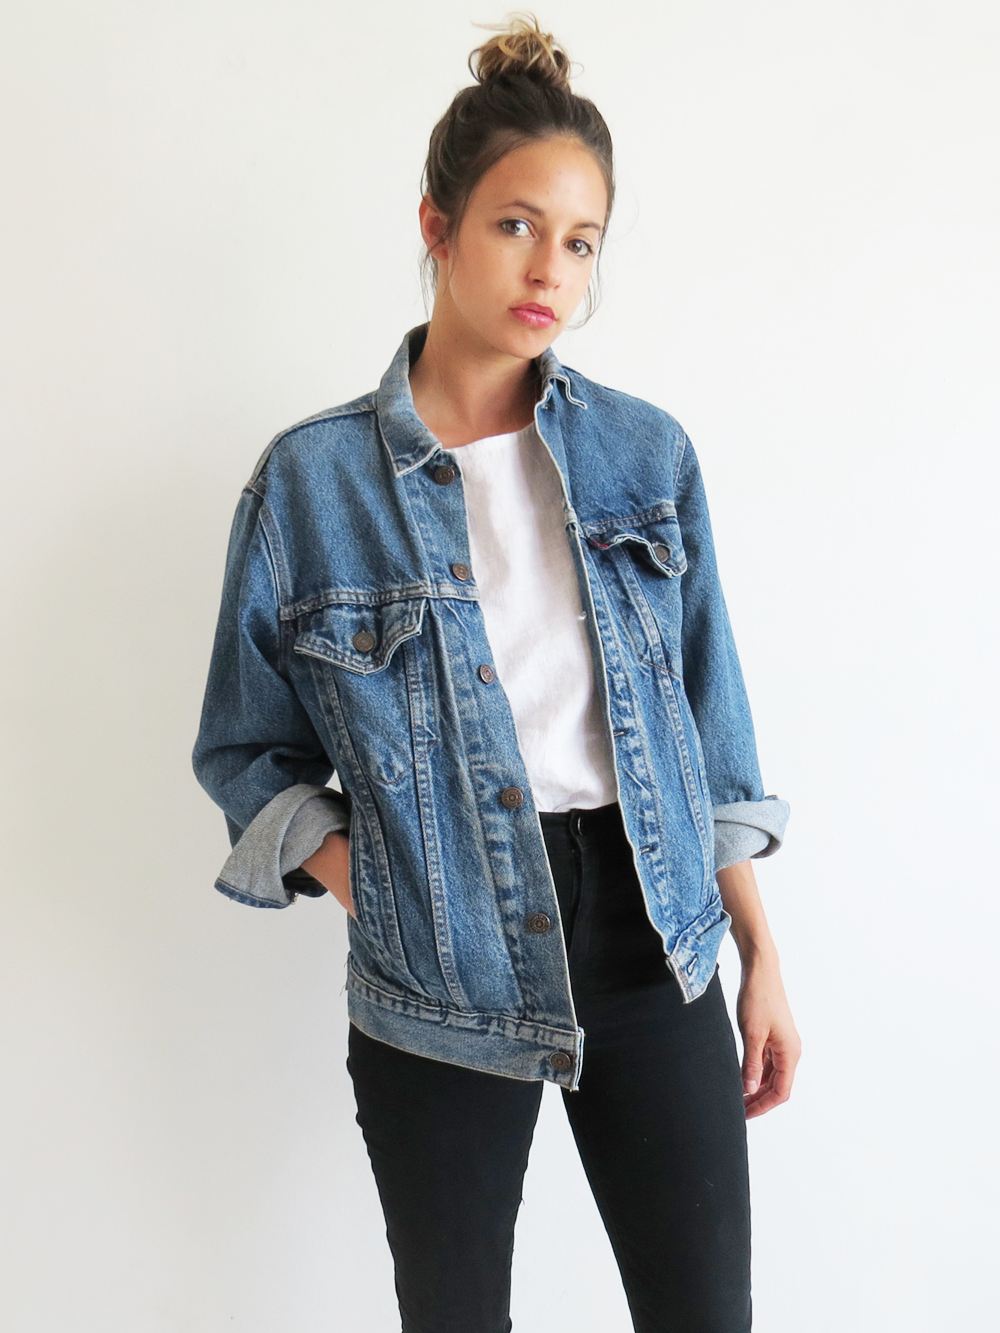 How To Wear A Denim Jacket In Spring 50 Outfits You Can Copy Page 34 Of 95 Larisoltd Com Vintage Clothes Women Fashion Clothes